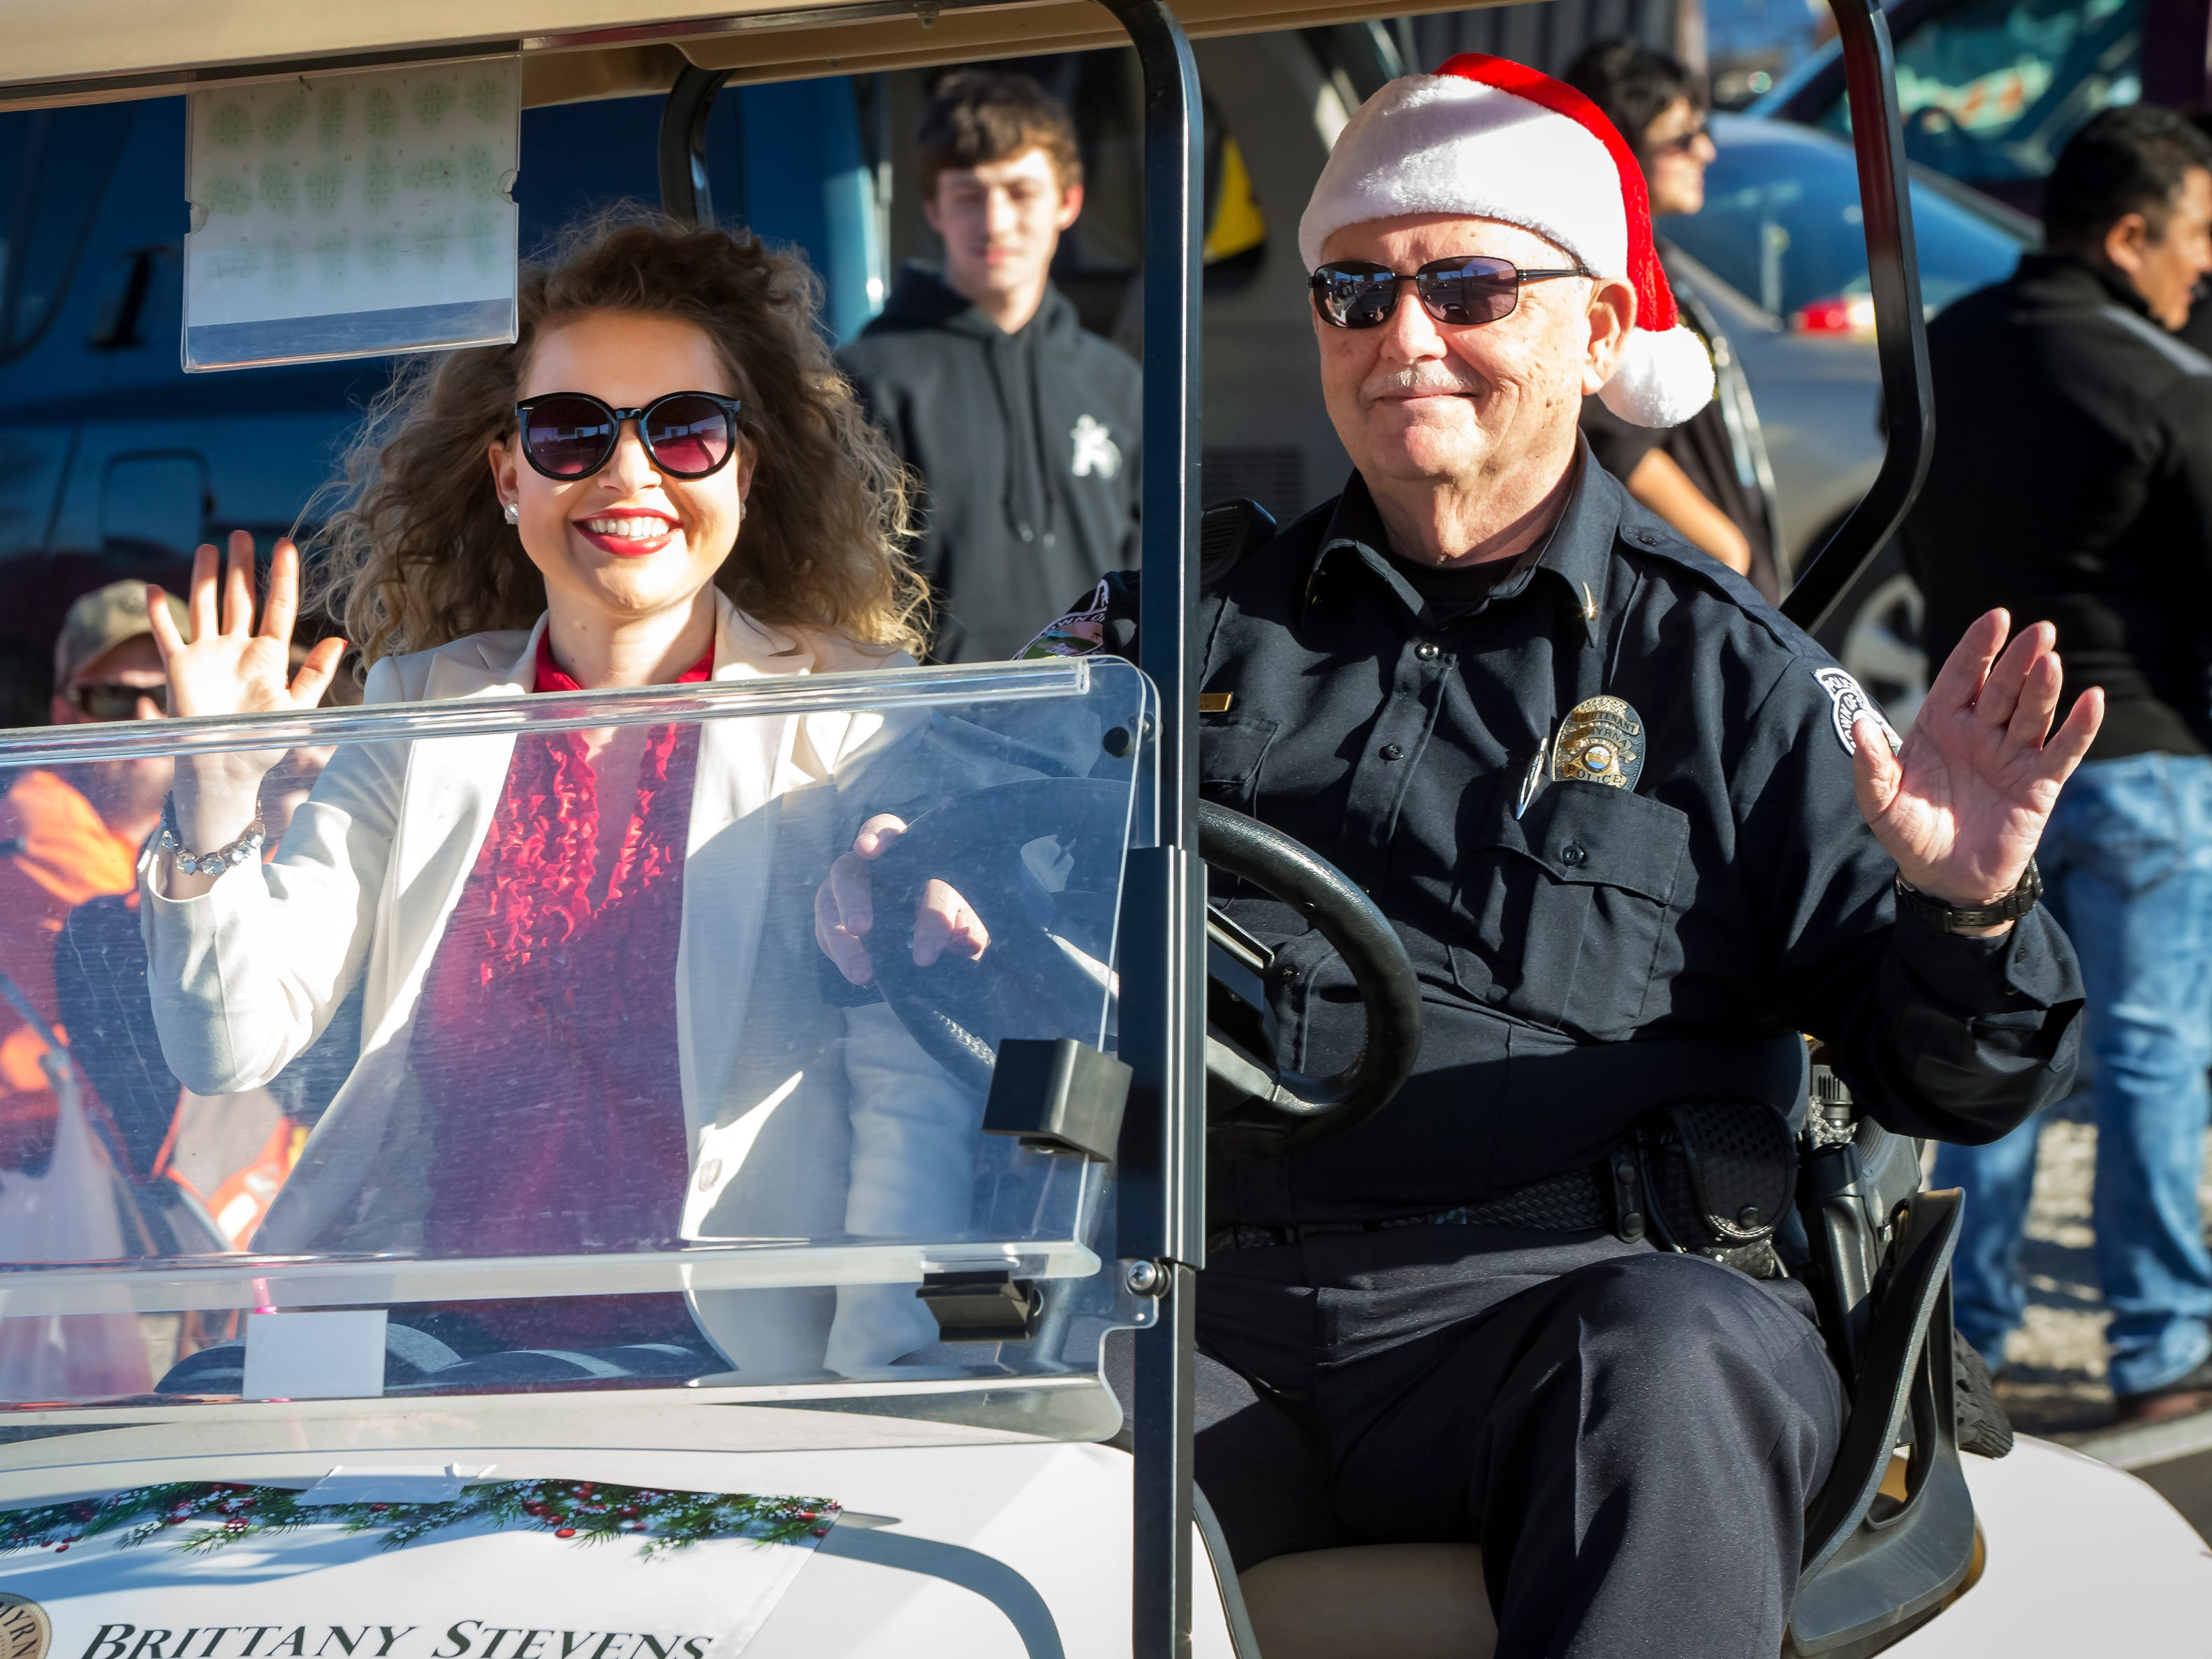 Smyrna's 44th annual Christmas parade was held Sunday, Dec. 2, 2018. Smyrna Town Court Clerk Brittany Stevens rides in a golf cart driven by a Smyrna police officer.